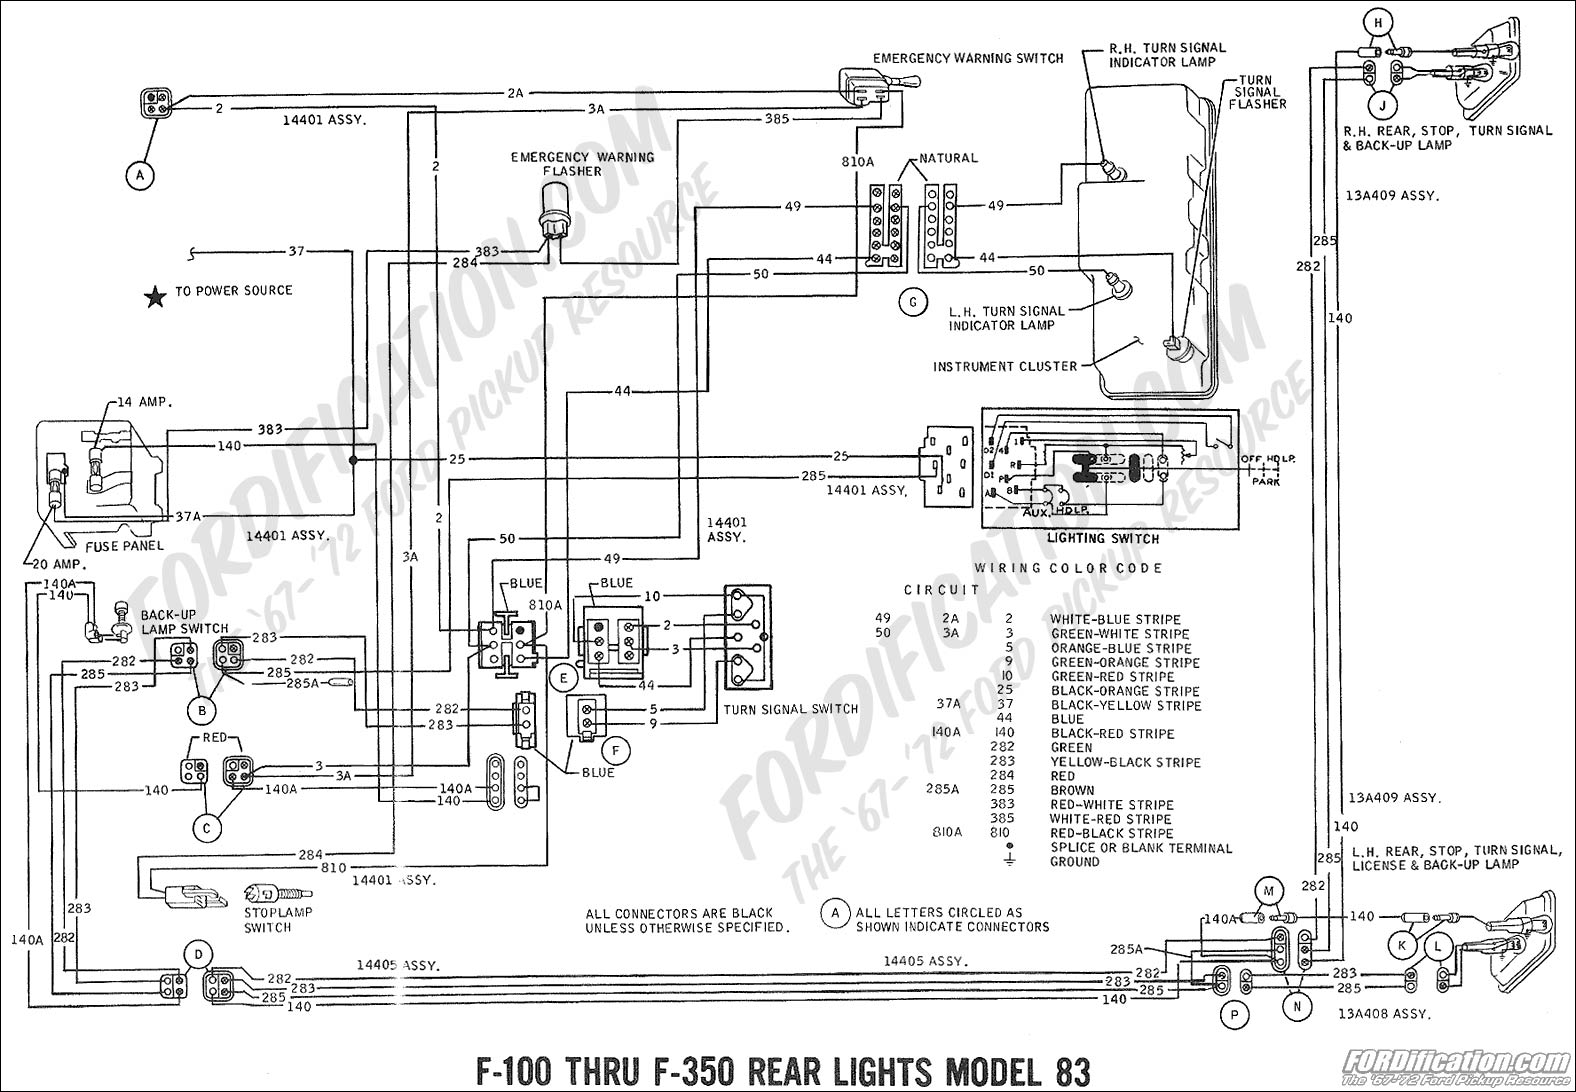 1977 ford 351 wiring diagram on ford truck technical drawings and schematics section h wiring Ford 351 Windsor Engine Diagram Ford 351 Windsor